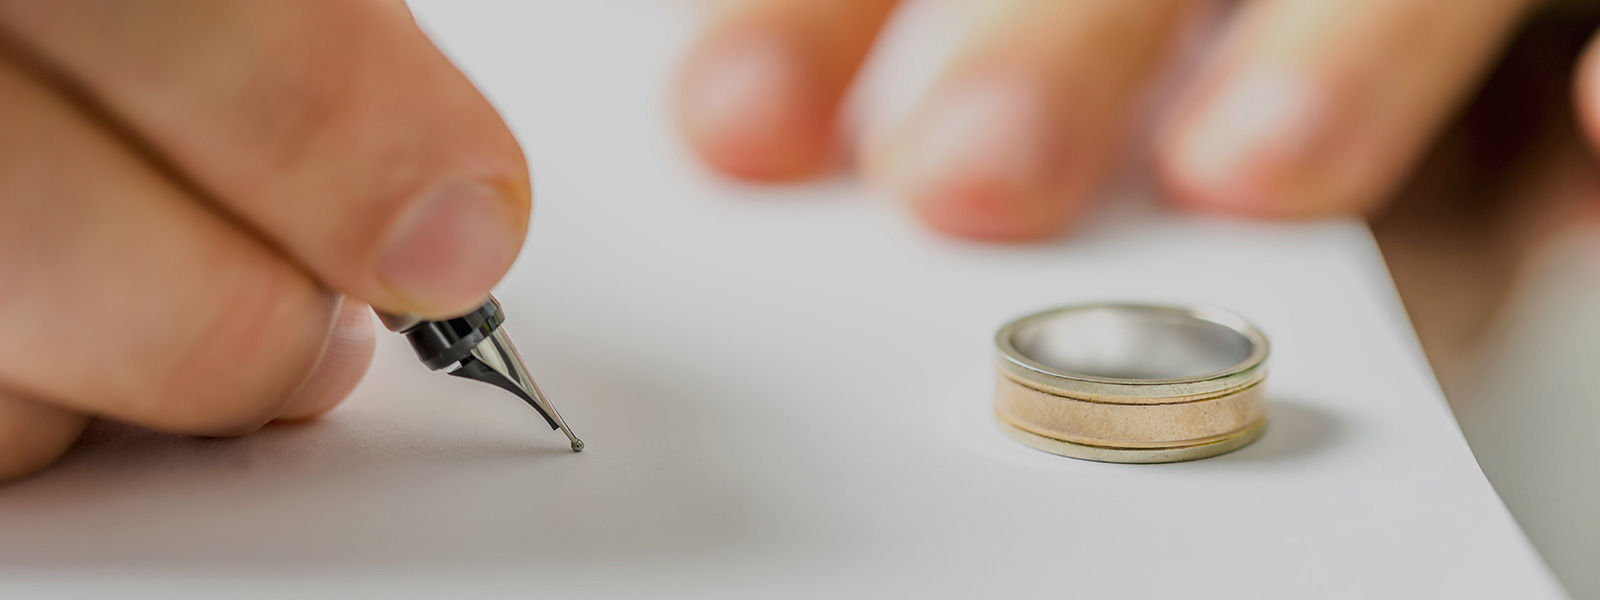 Closeup of male hand signing divorce papers - absolute divorce